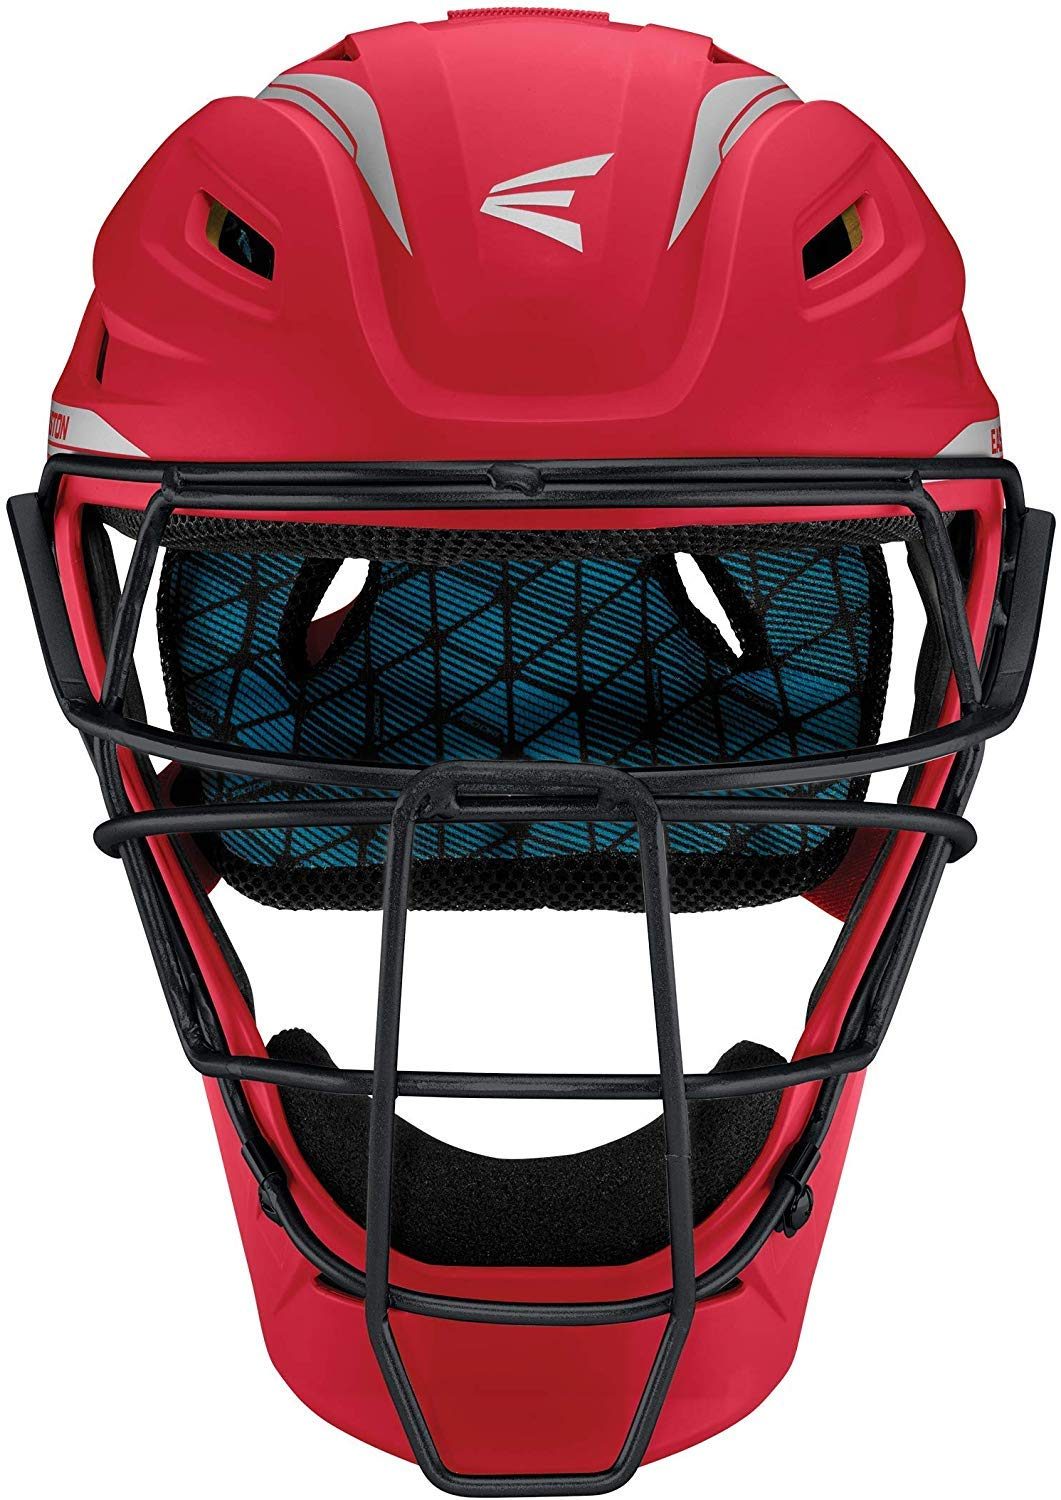 Easton Pro x Catchers Helmet Pro-X C-Helmet RY/Sl L, Red/ Silver, Large by Easton